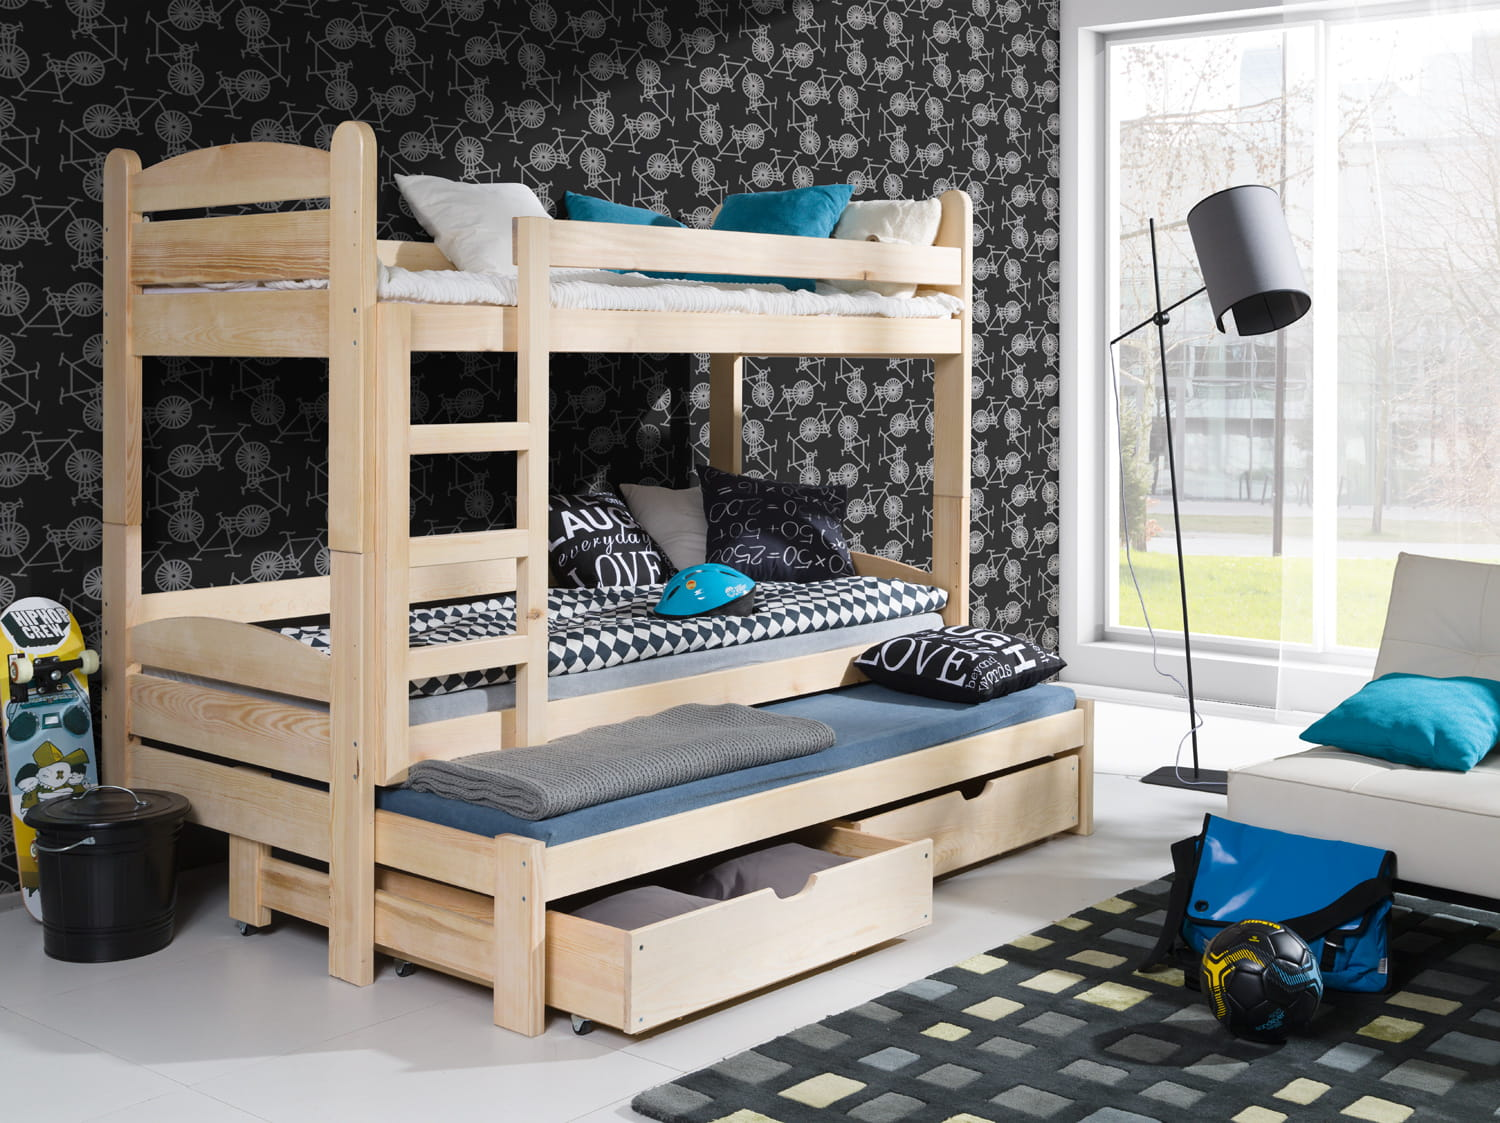 etagenbett luis etagenbett kinder etagenbett f r 3 personen. Black Bedroom Furniture Sets. Home Design Ideas